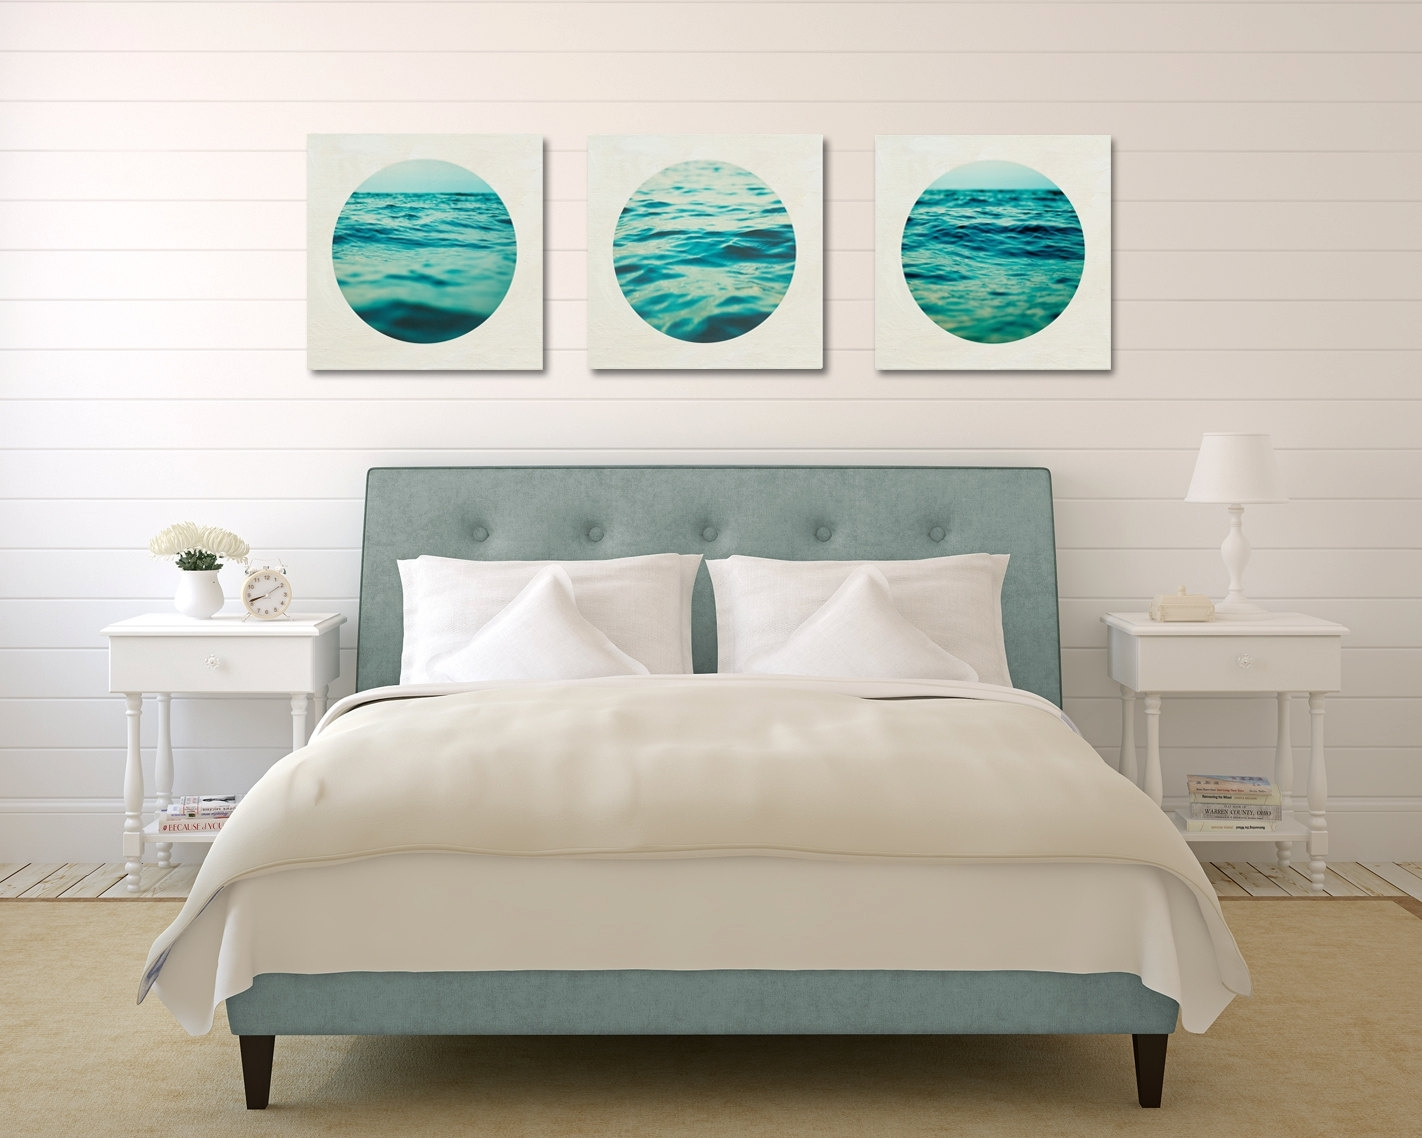 Stunning Bedroom Canvas Art Images – House Design Interior Intended For Most Recent Bedroom Canvas Wall Art (Gallery 3 of 15)